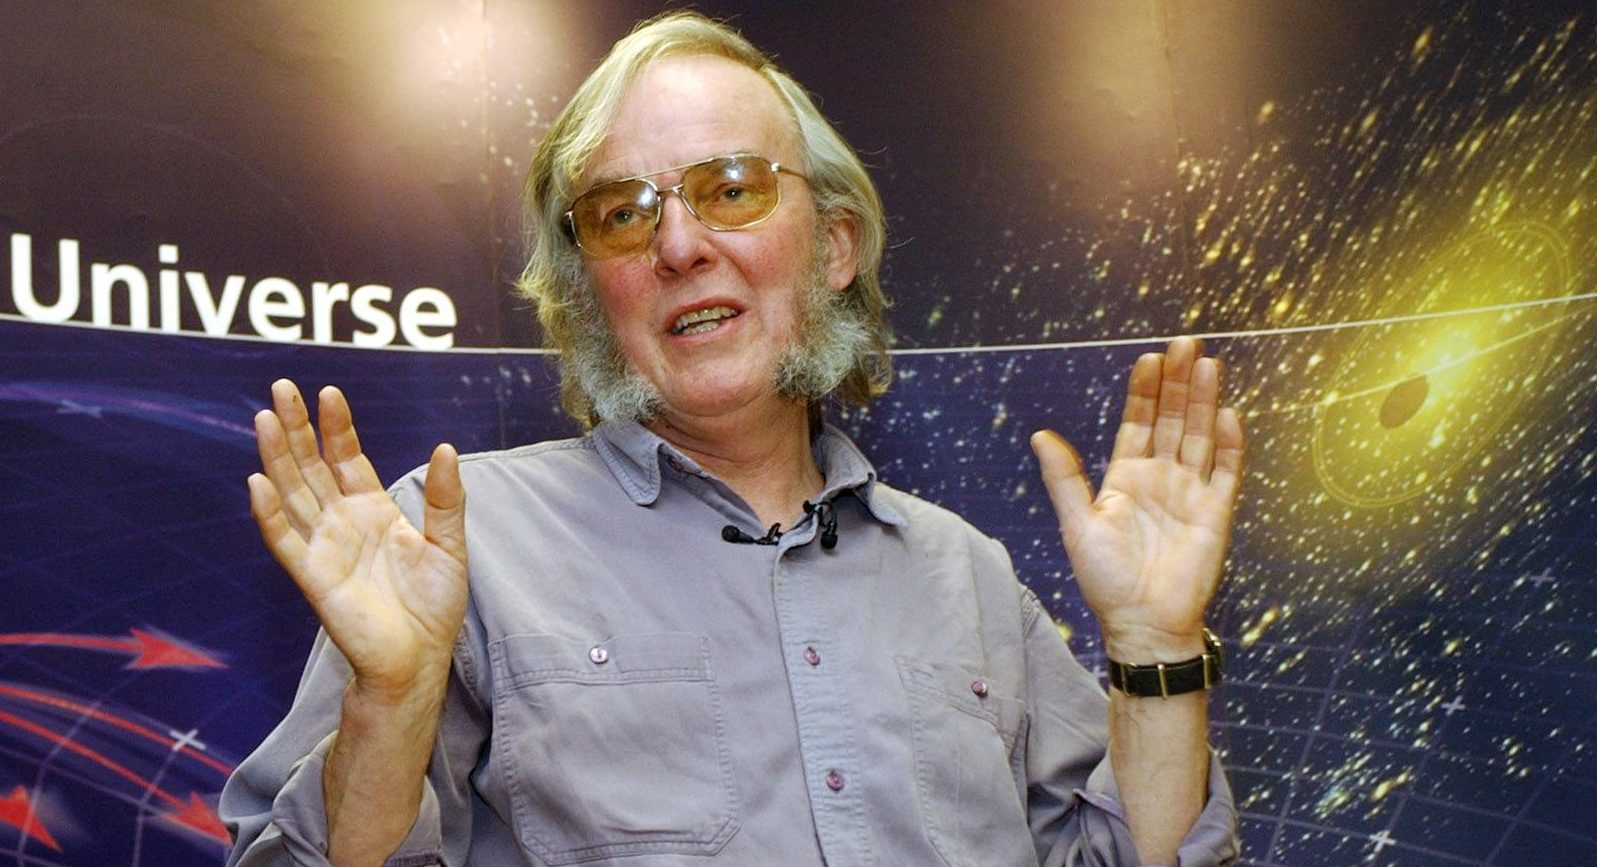 Professor Colin Pillinger, the principal investigator for the British Beagle 2 Mars lander project, died in 2014 not knowing how close the project was to succeeding.